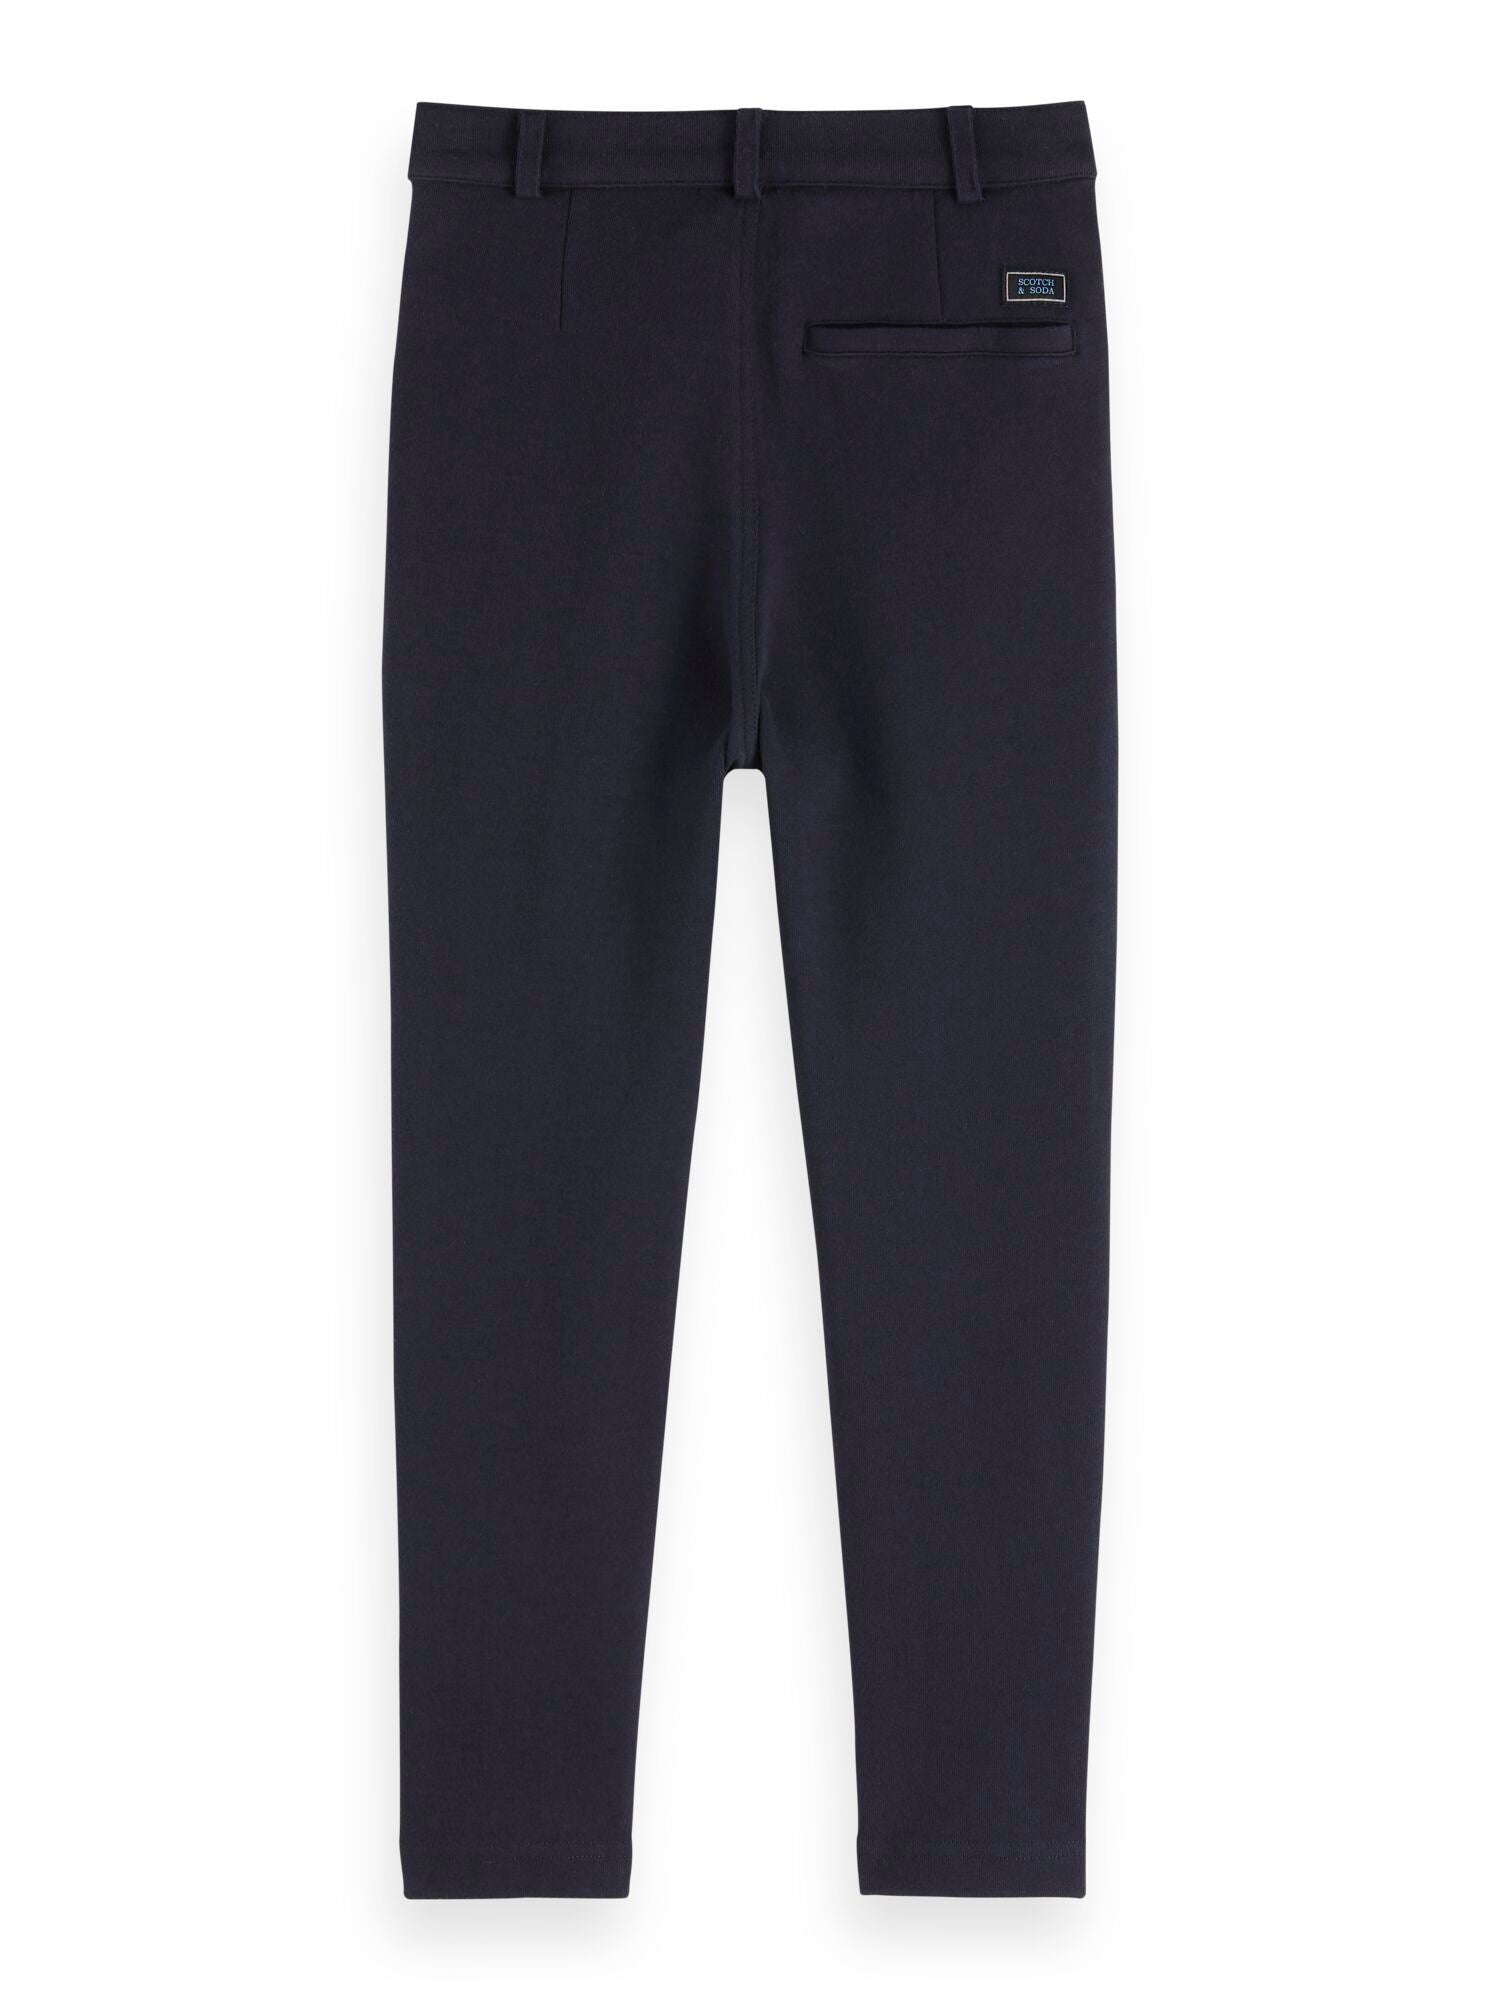 Scotch Shrunk Bonded Dress Pants -Navy